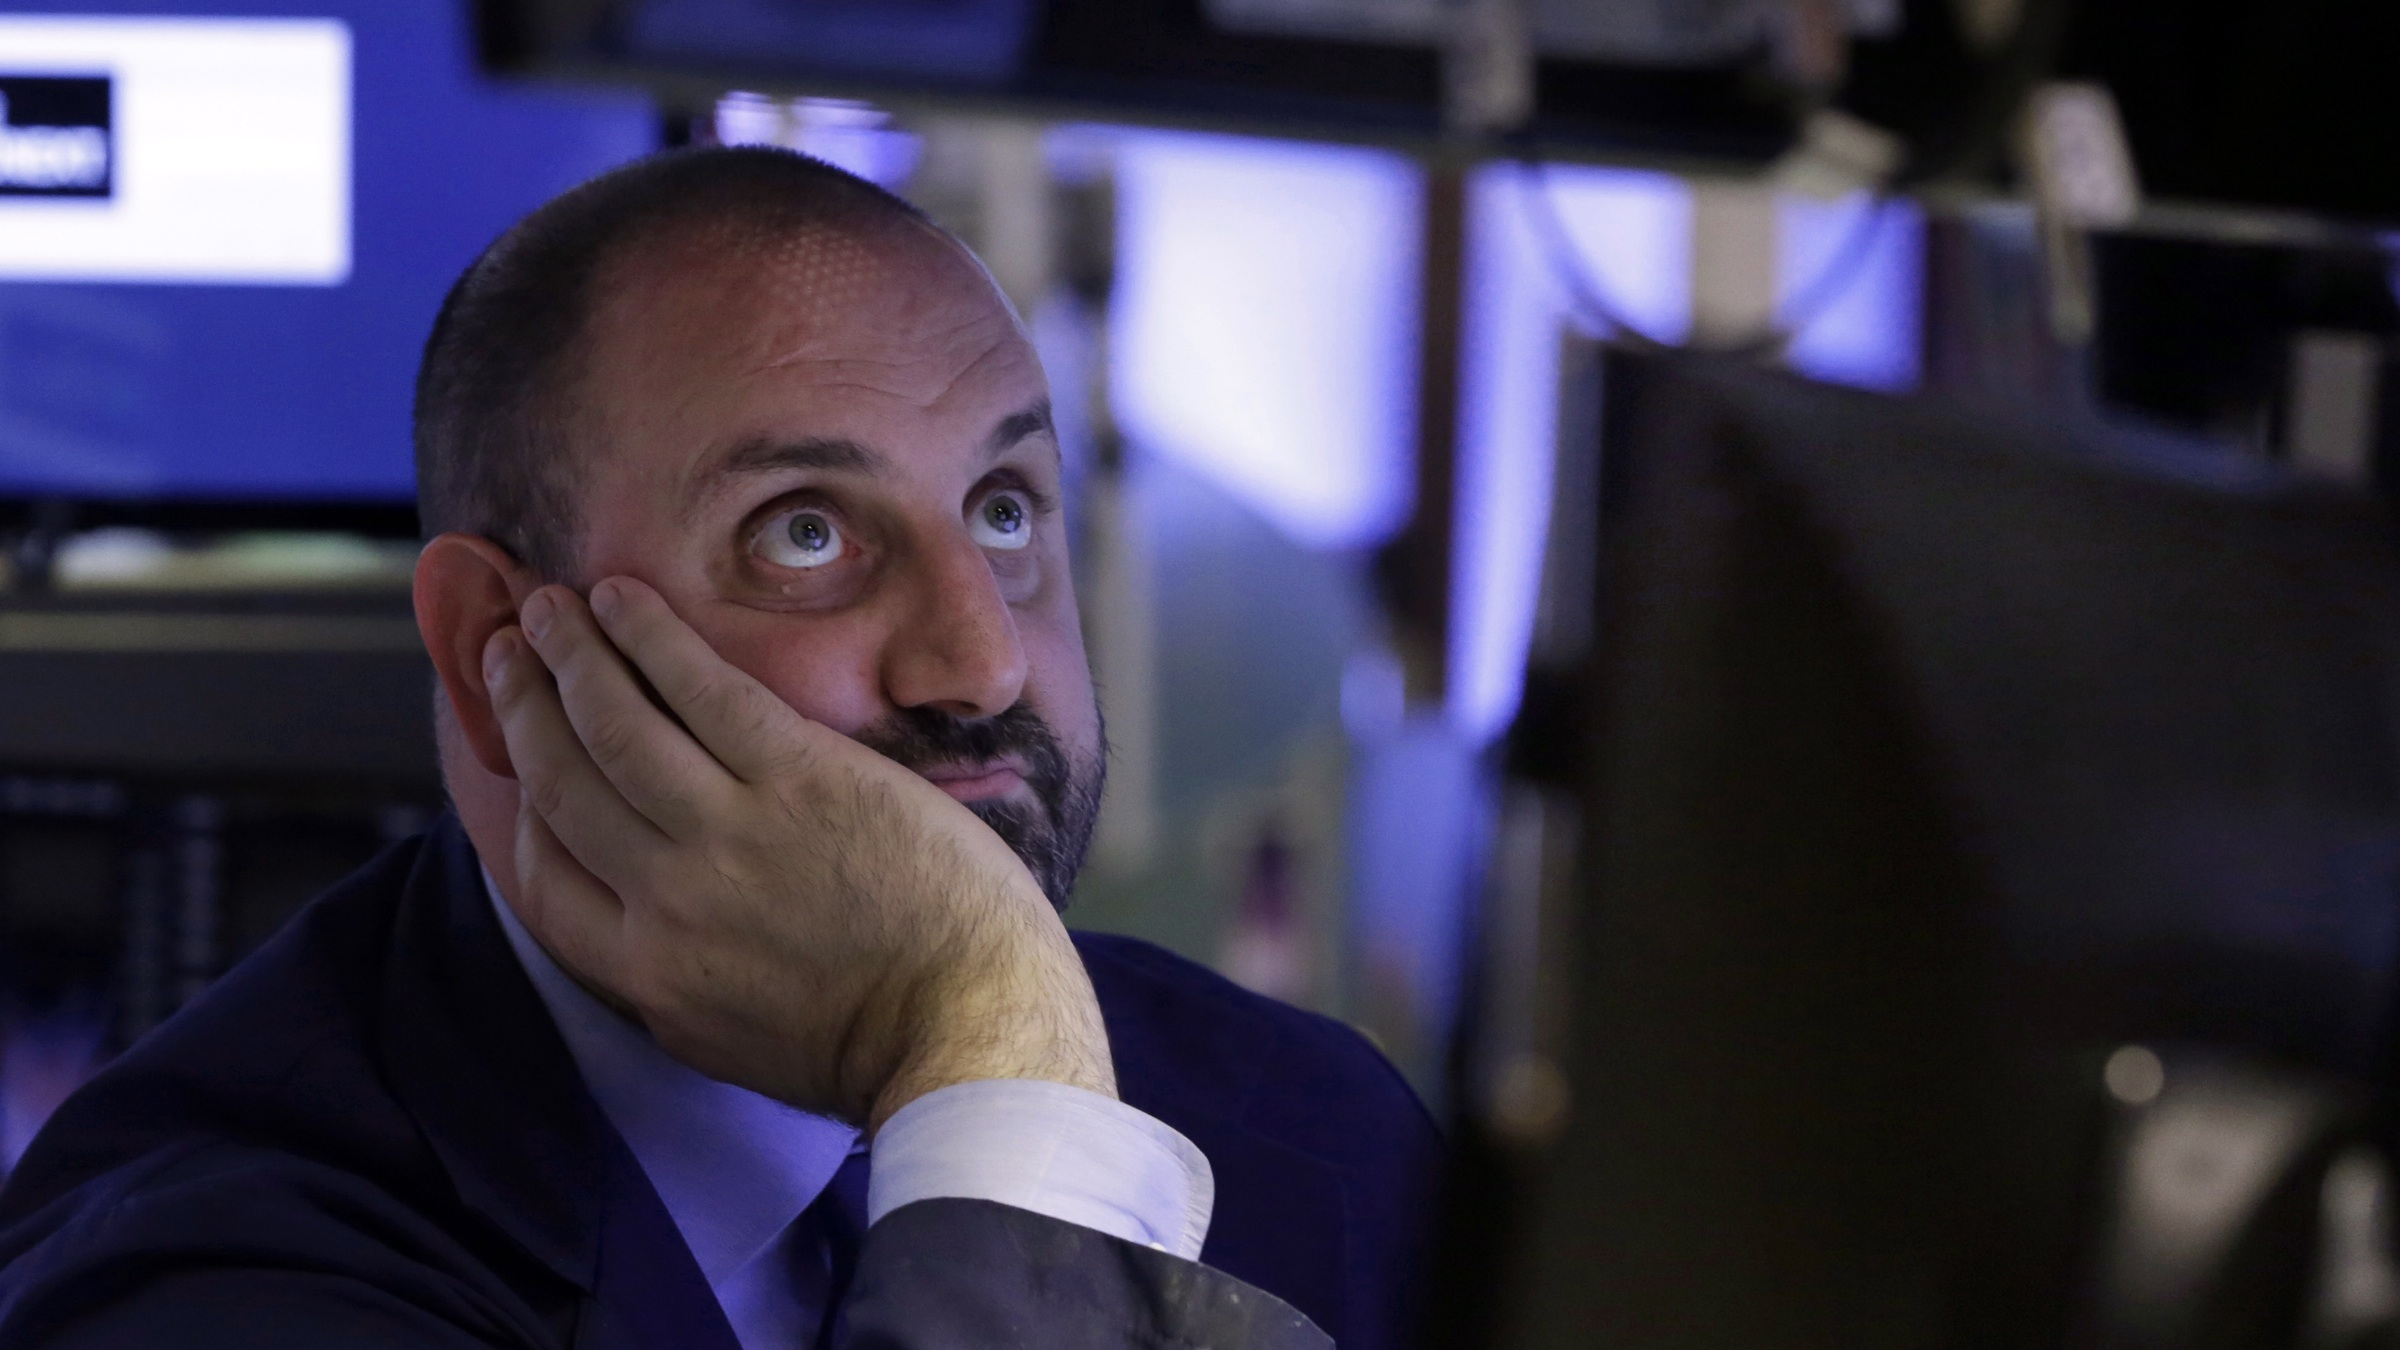 Specialist Peter Giacchi watches his screens as he works on the floor of the New York Stock Exchange, Monday, June 24, 2013. Traders in the U.S. dumped stocks, bonds and commodities, prompted by signs of distress in China's economy and worries about the end of the Federal Reserve bank's easy money policies. (AP Photo/Richard Drew)